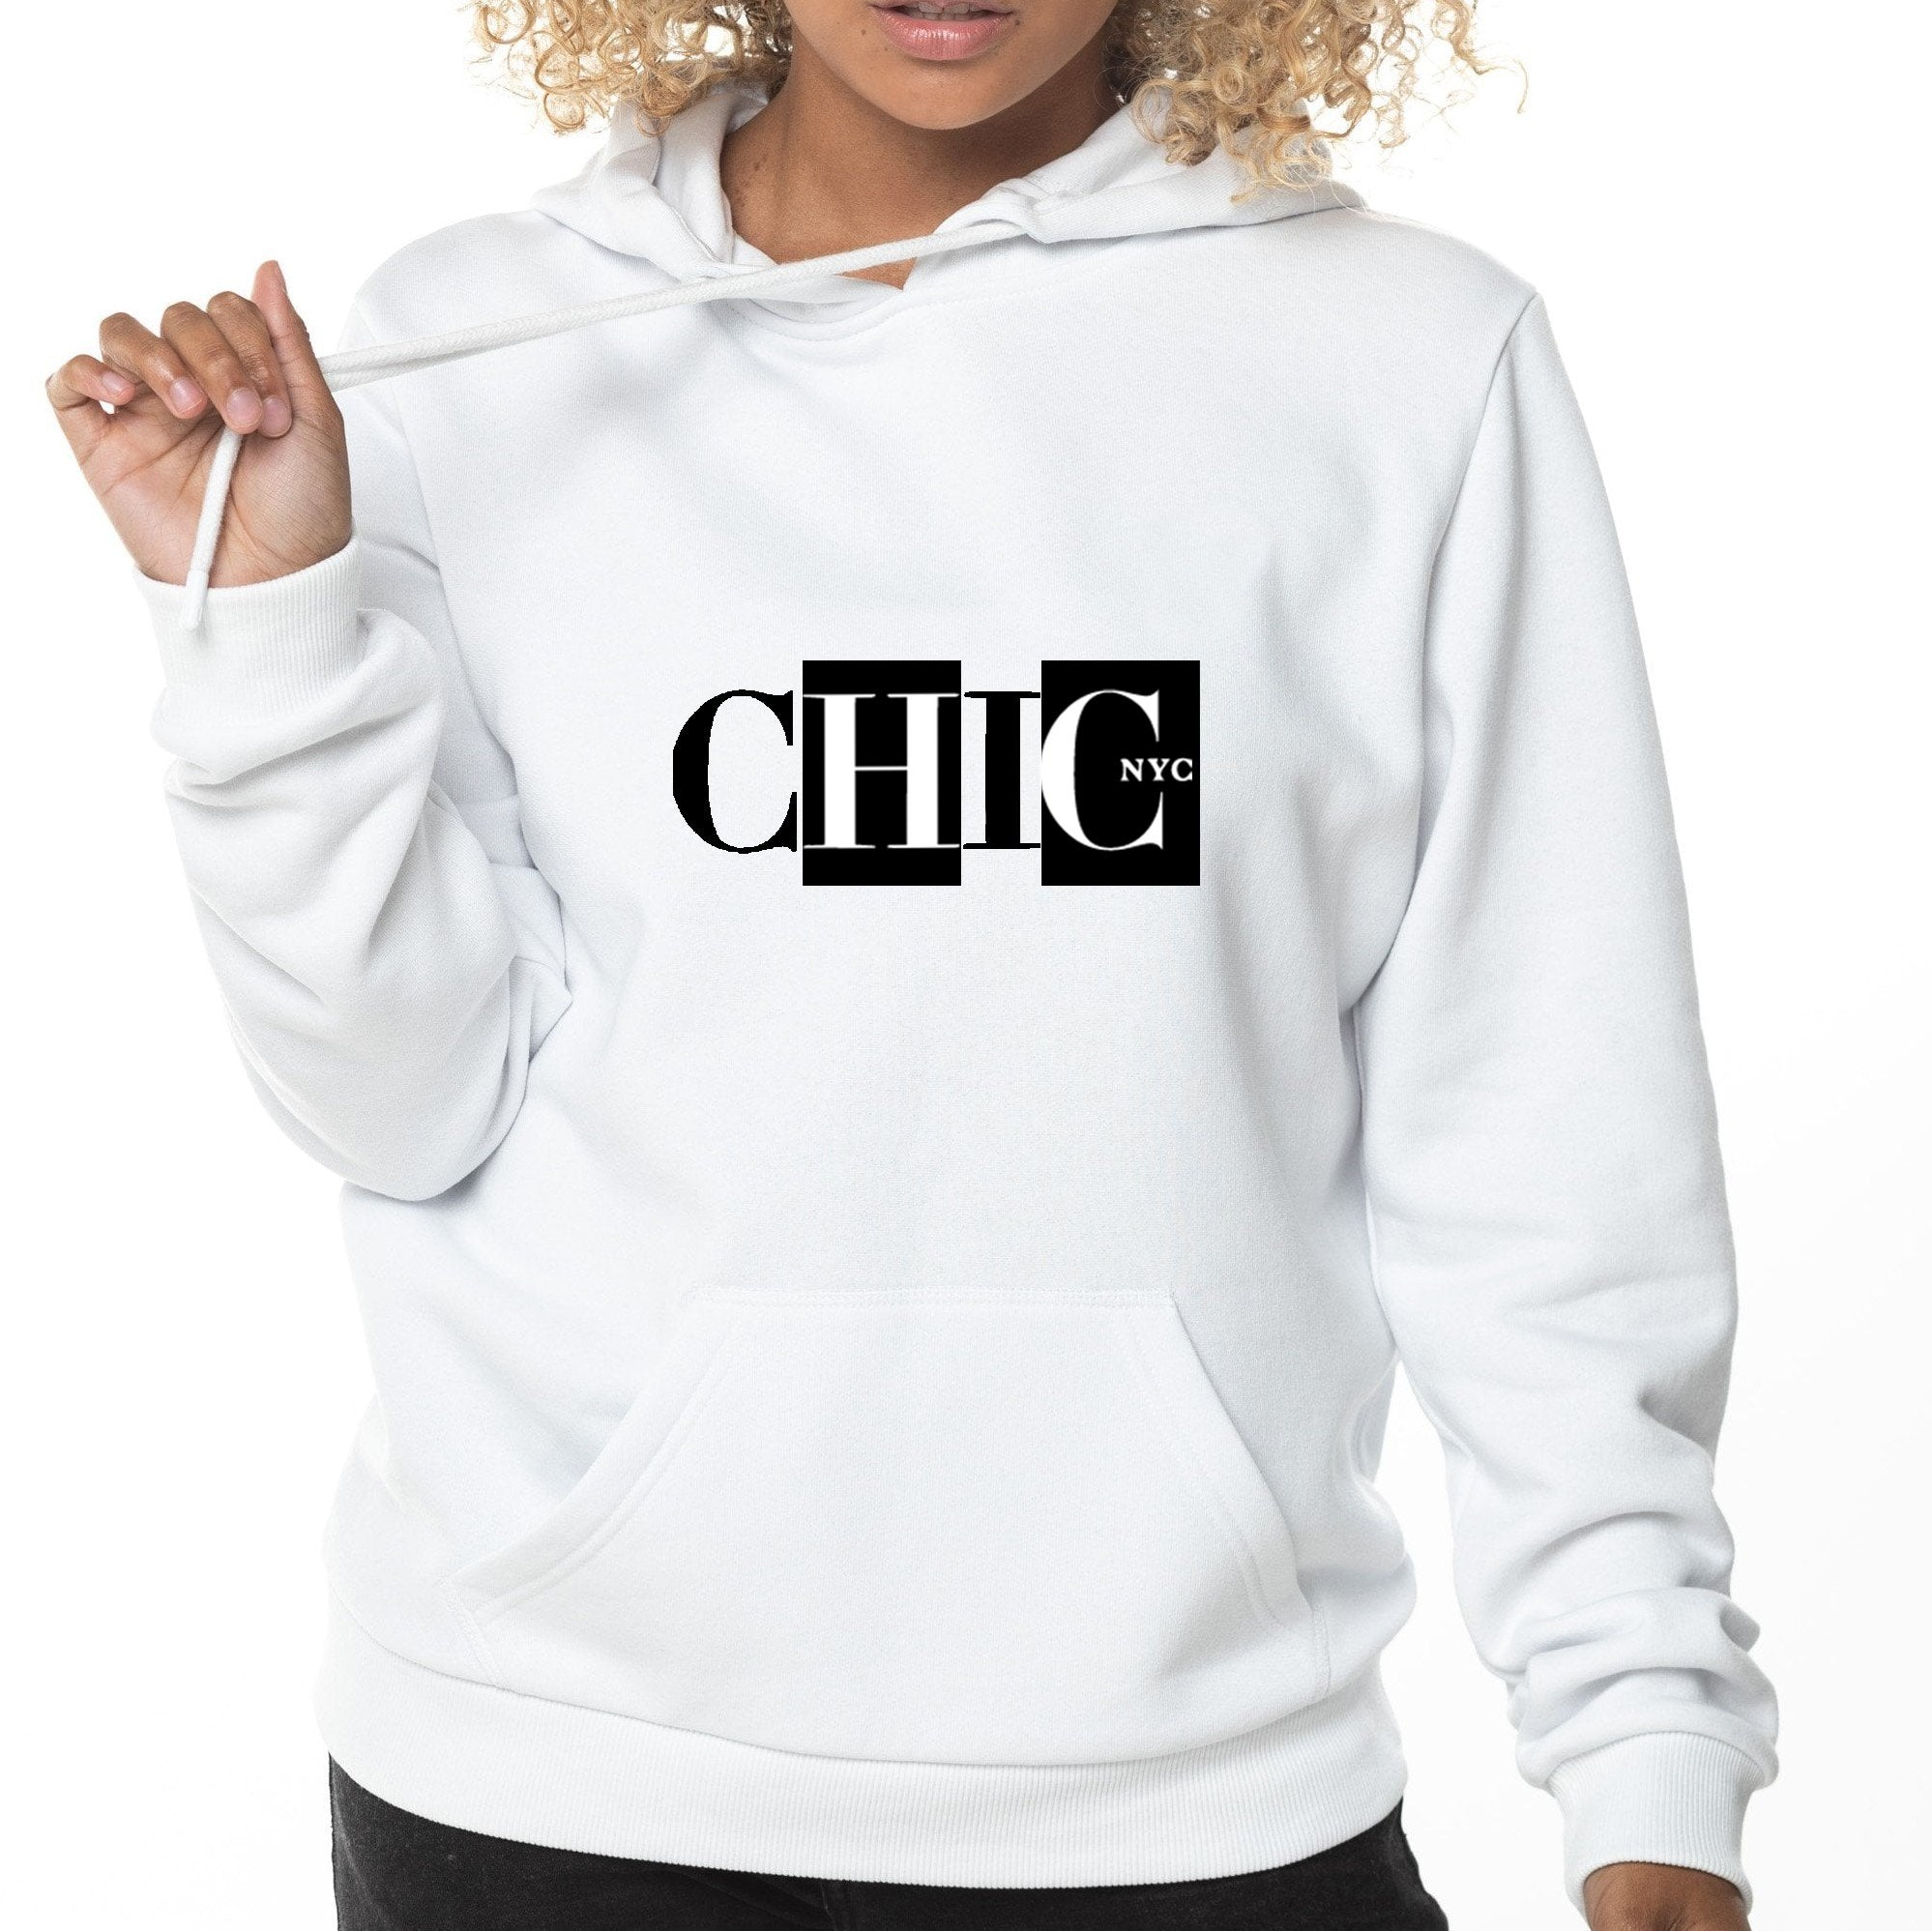 CHIC NYC Black and White Hoodie